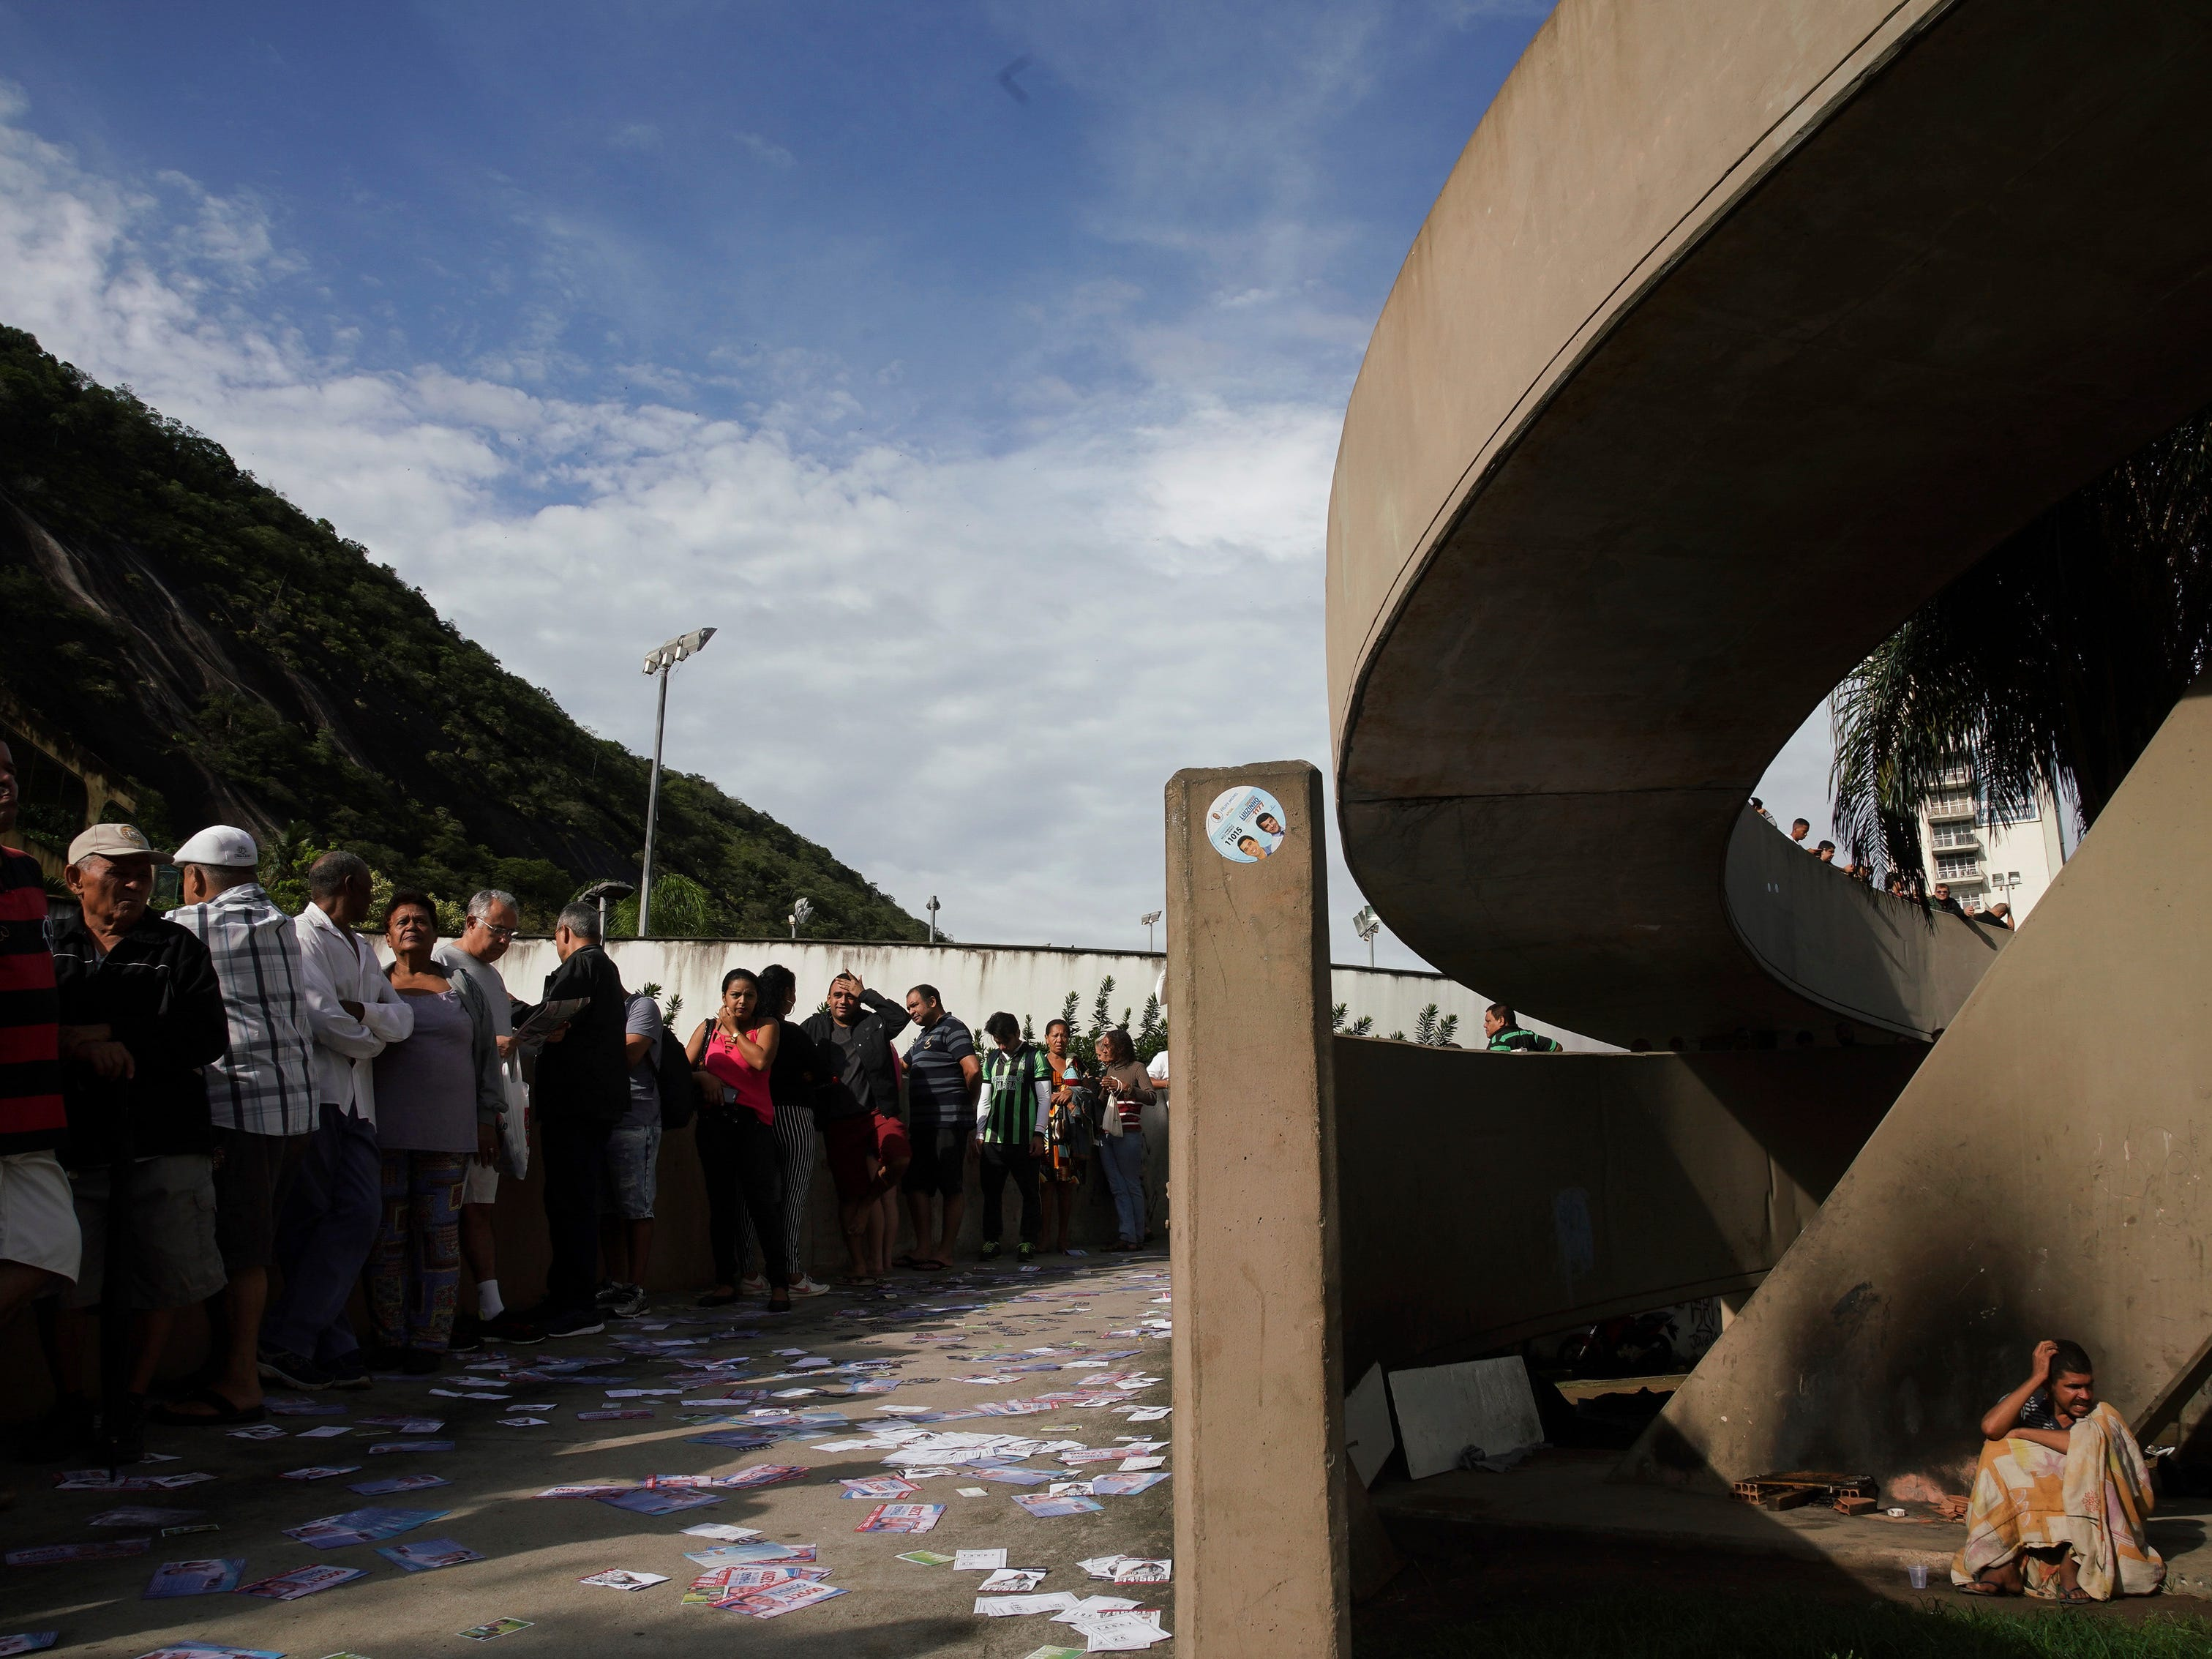 A homeless person sits underneath a bridge where he spent the night as voters wait in line at a polling station in the Rocinha favela in Rio de Janeiro, Brazil, Sunday, Oct. 7, 2018. Brazilians choose among 13 candidates for president Sunday in one of the most unpredictable and divisive elections in decades. If no one gets a majority in the first round, the top two candidates will compete in a runoff.